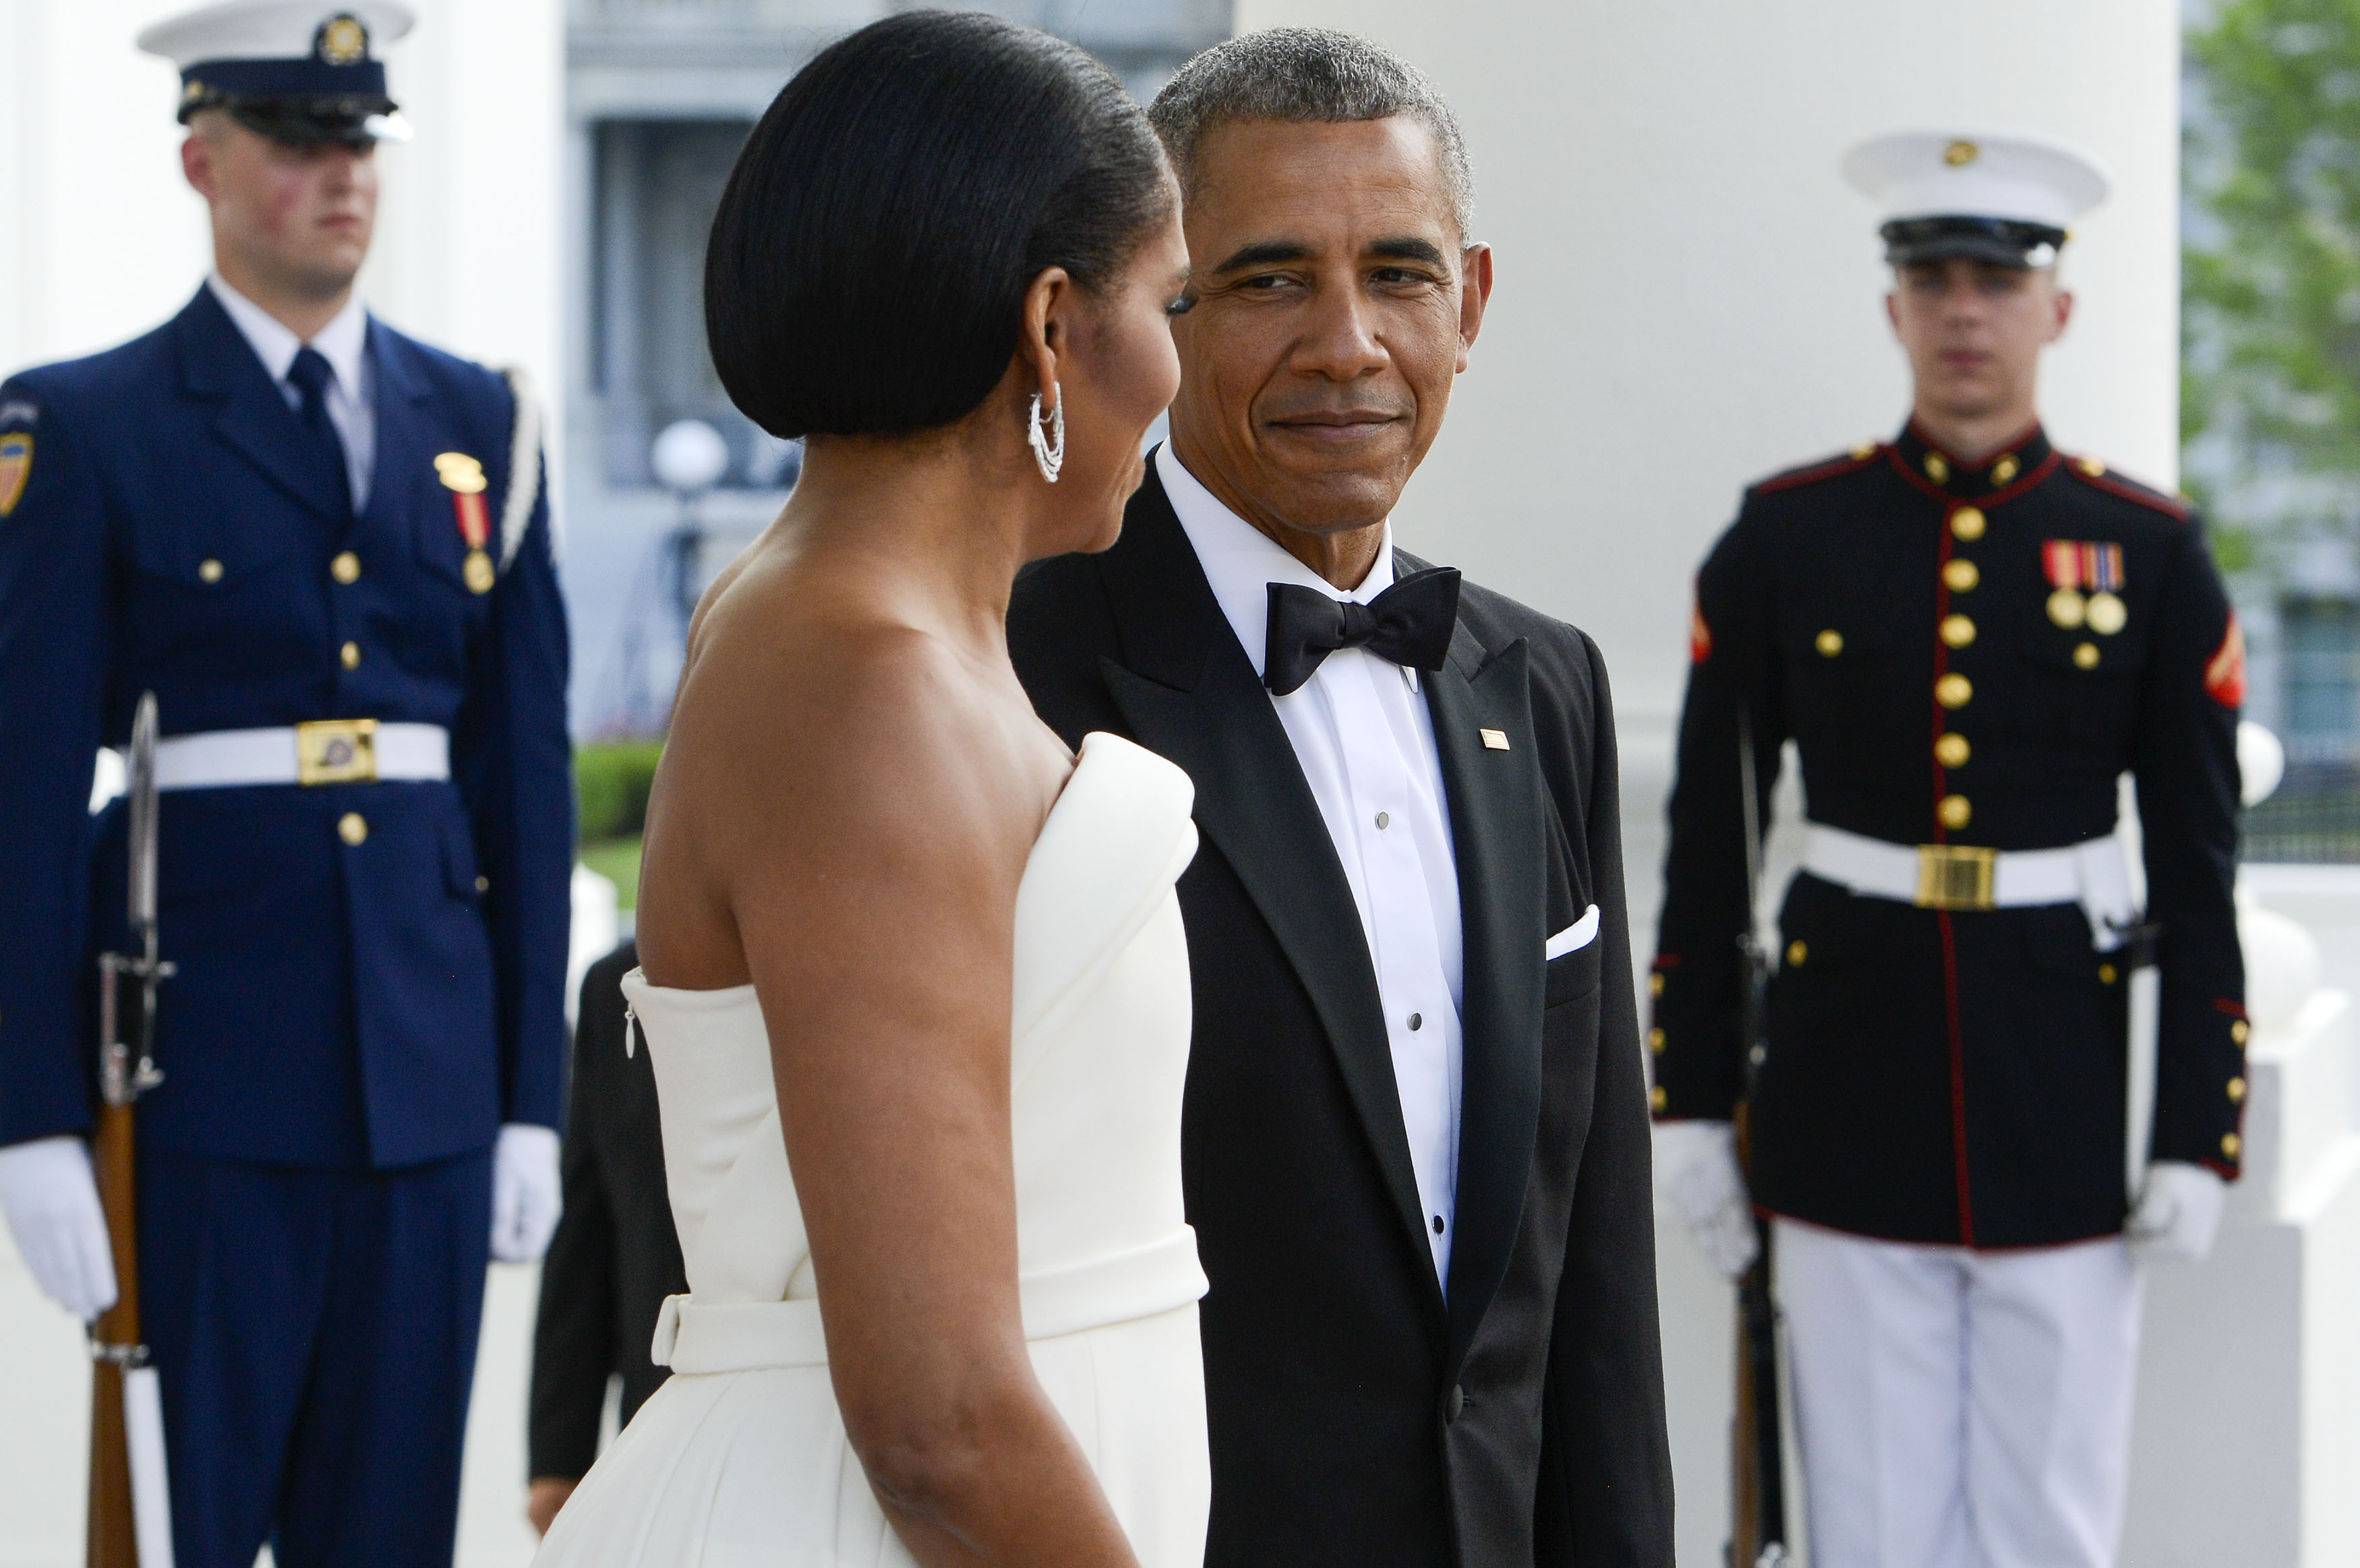 Michelle Obama Marks 25th Anniversary With Wedding Photo